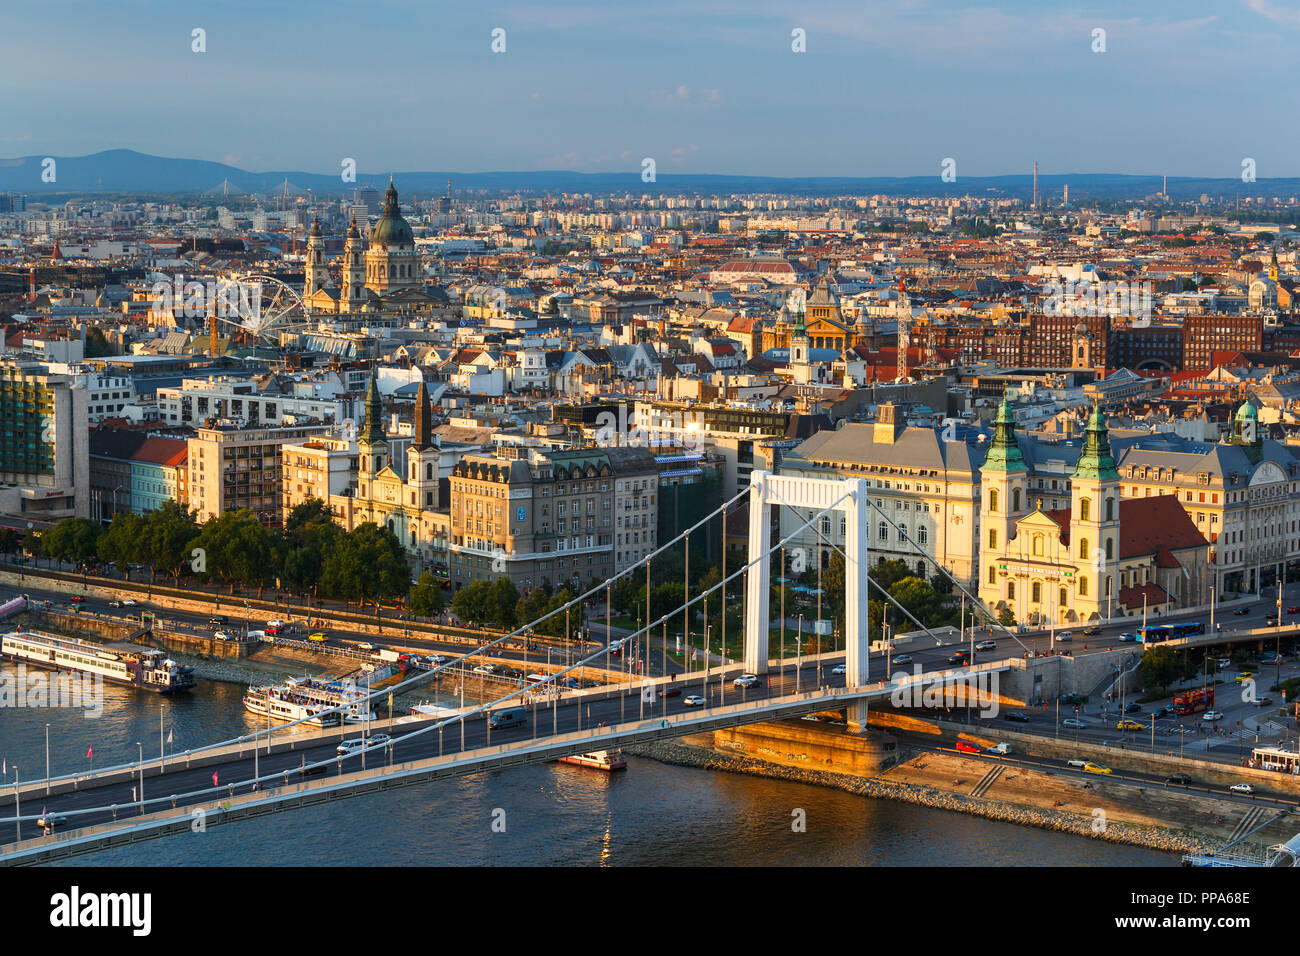 Budapest, Hungary - August 15, 2018: View of city centre of Budapest over the river Danube, Hungary. - Stock Image